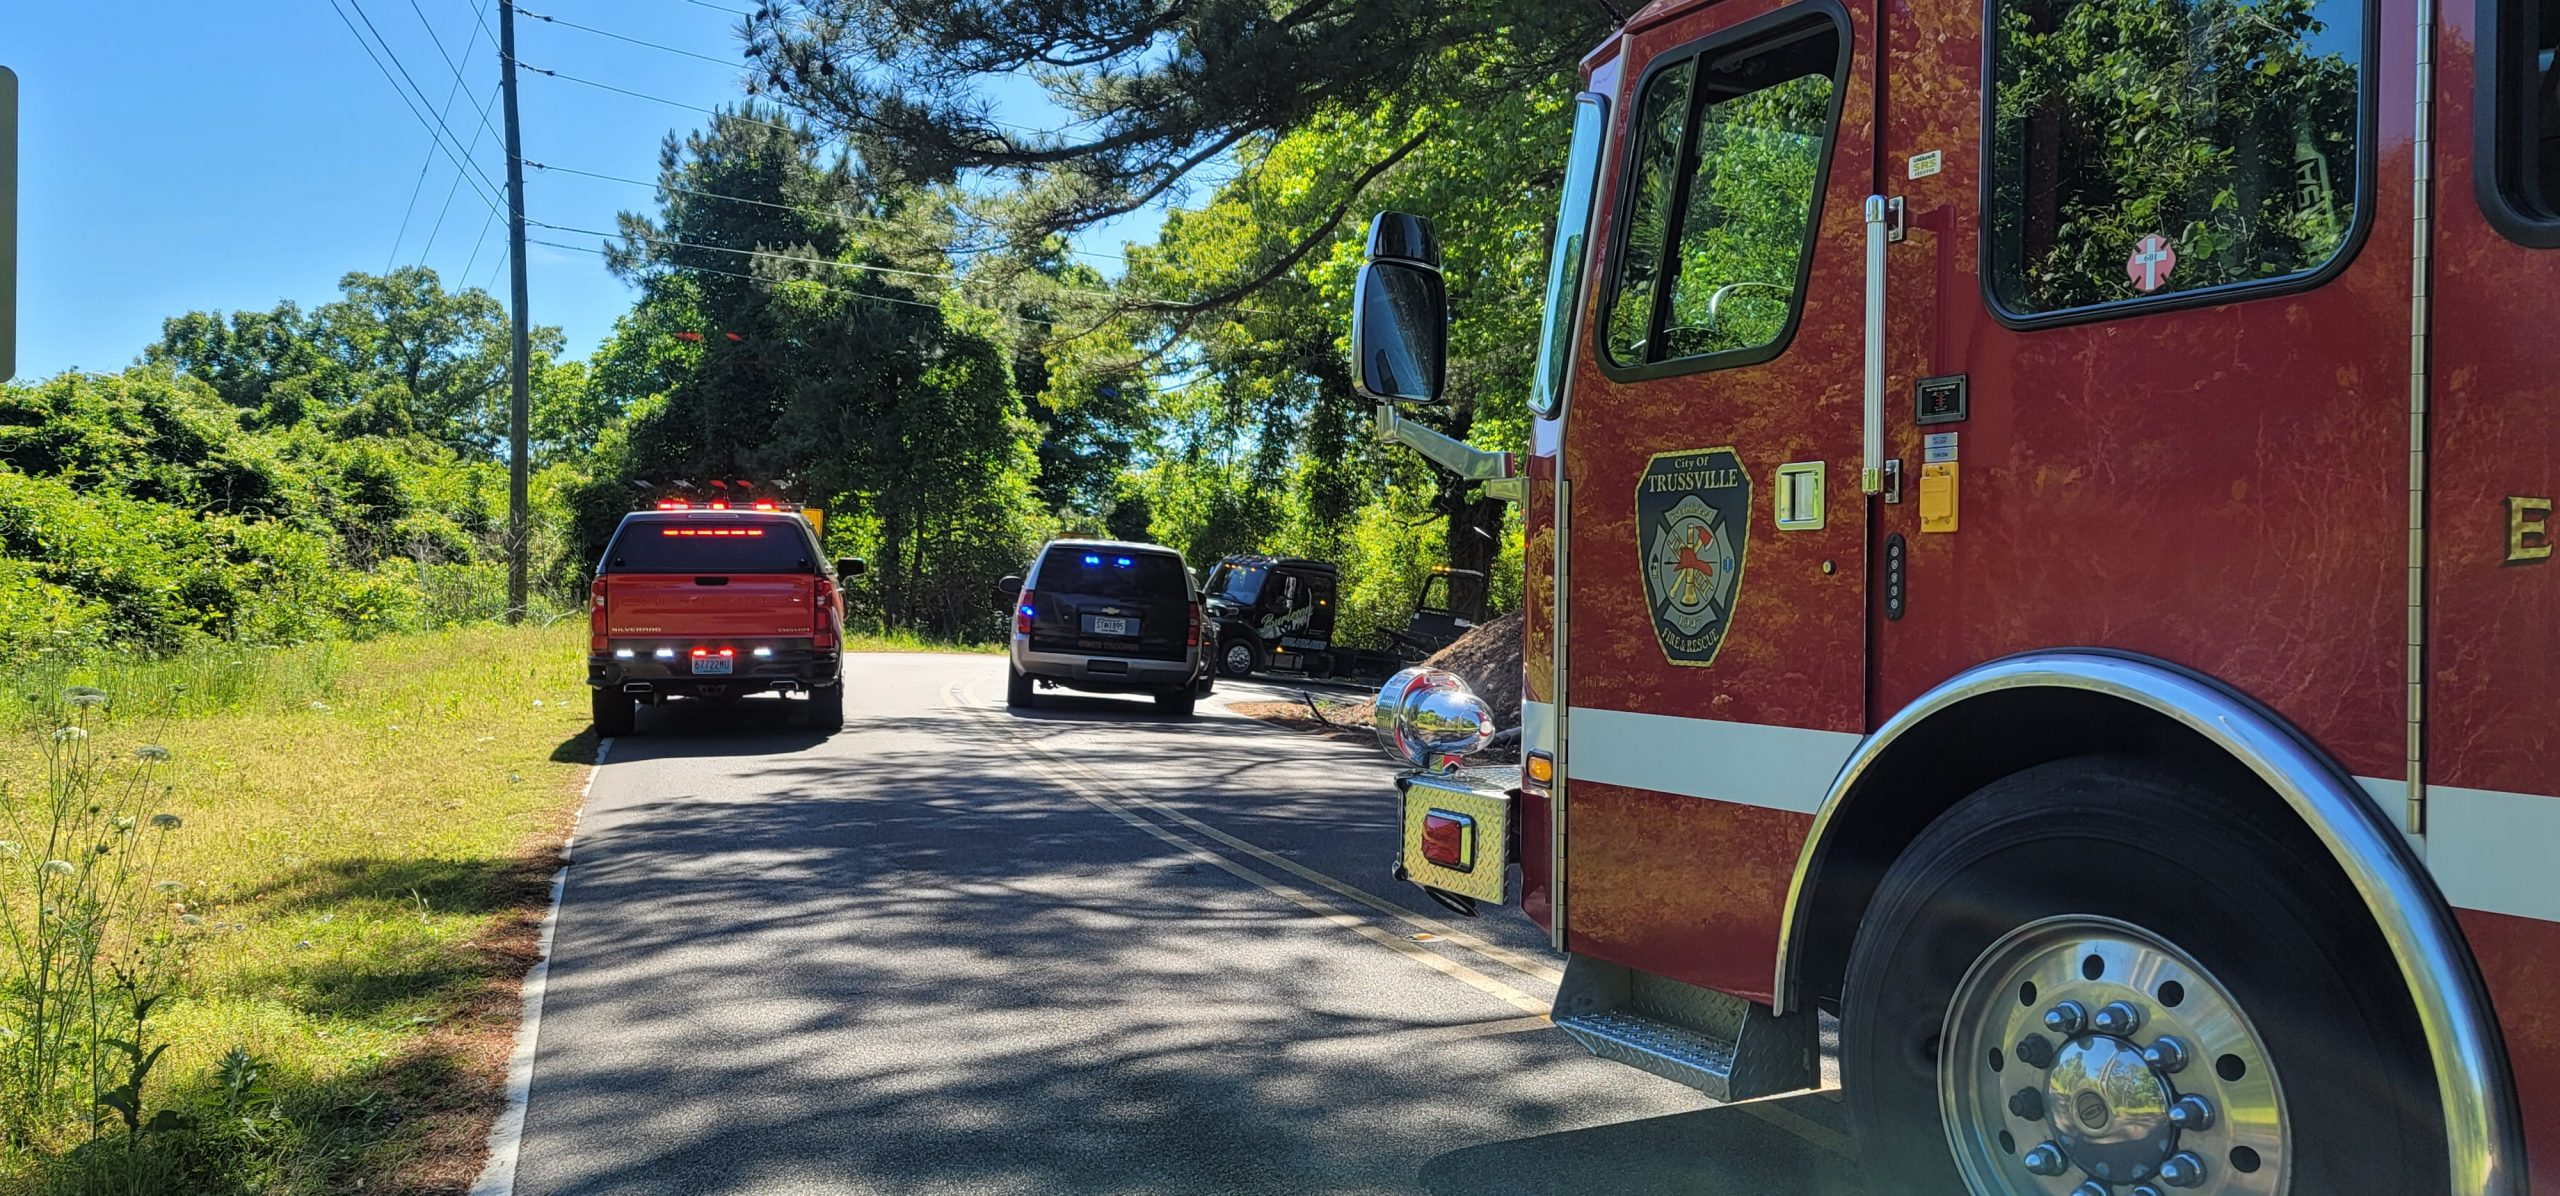 BREAKING: Motorcycle crashes in Trussville during Trooper pursuit